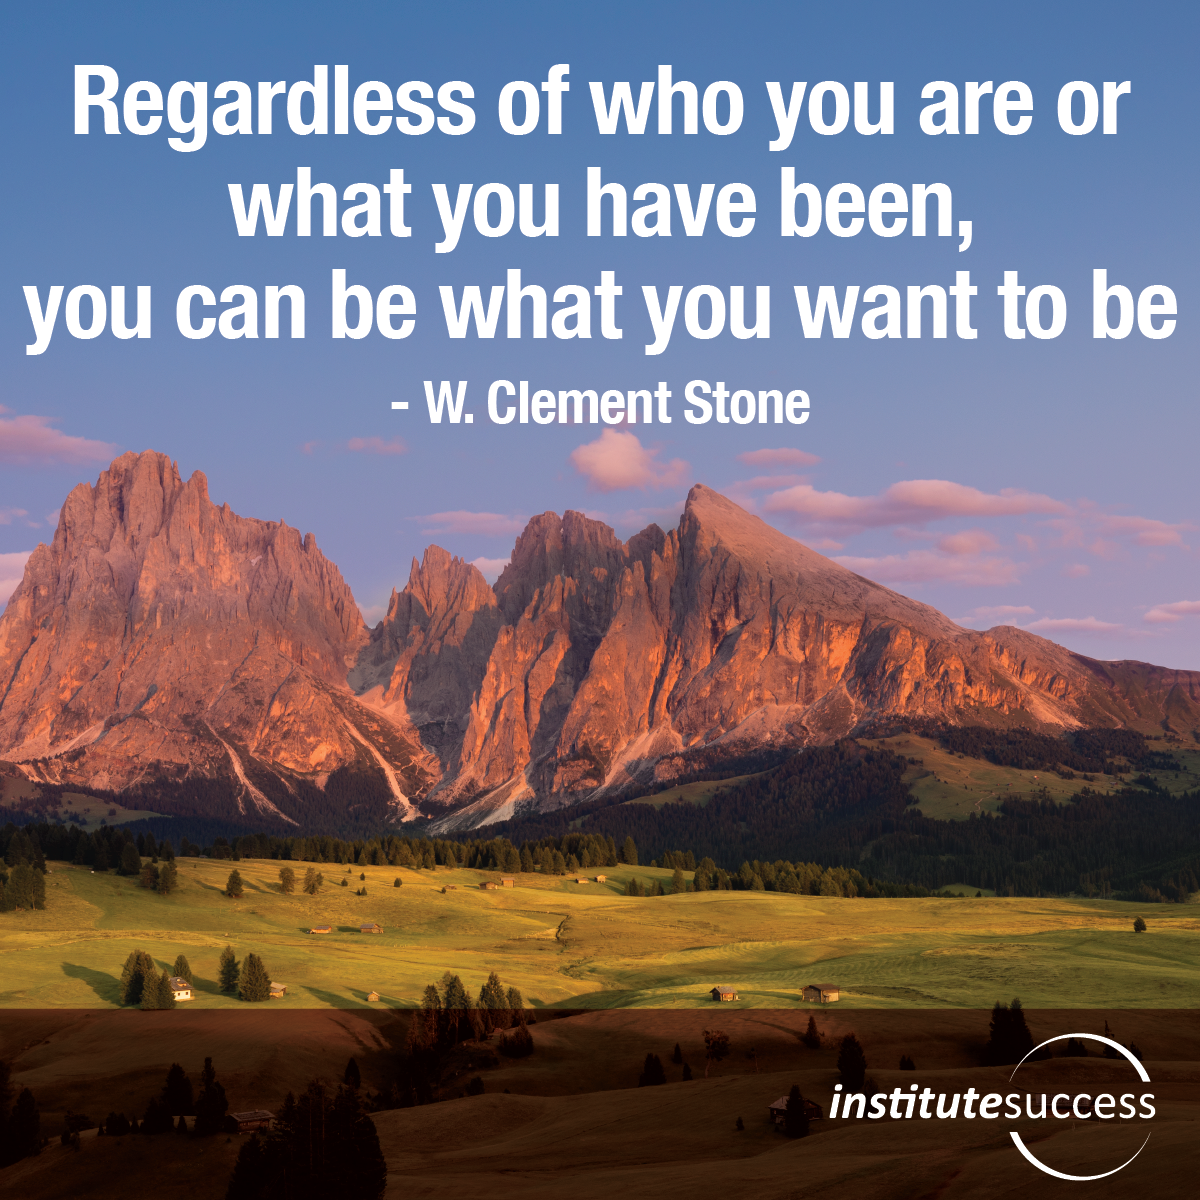 Regardless of who you are or what you have been, you can be what you want to be – W. Clement Stone